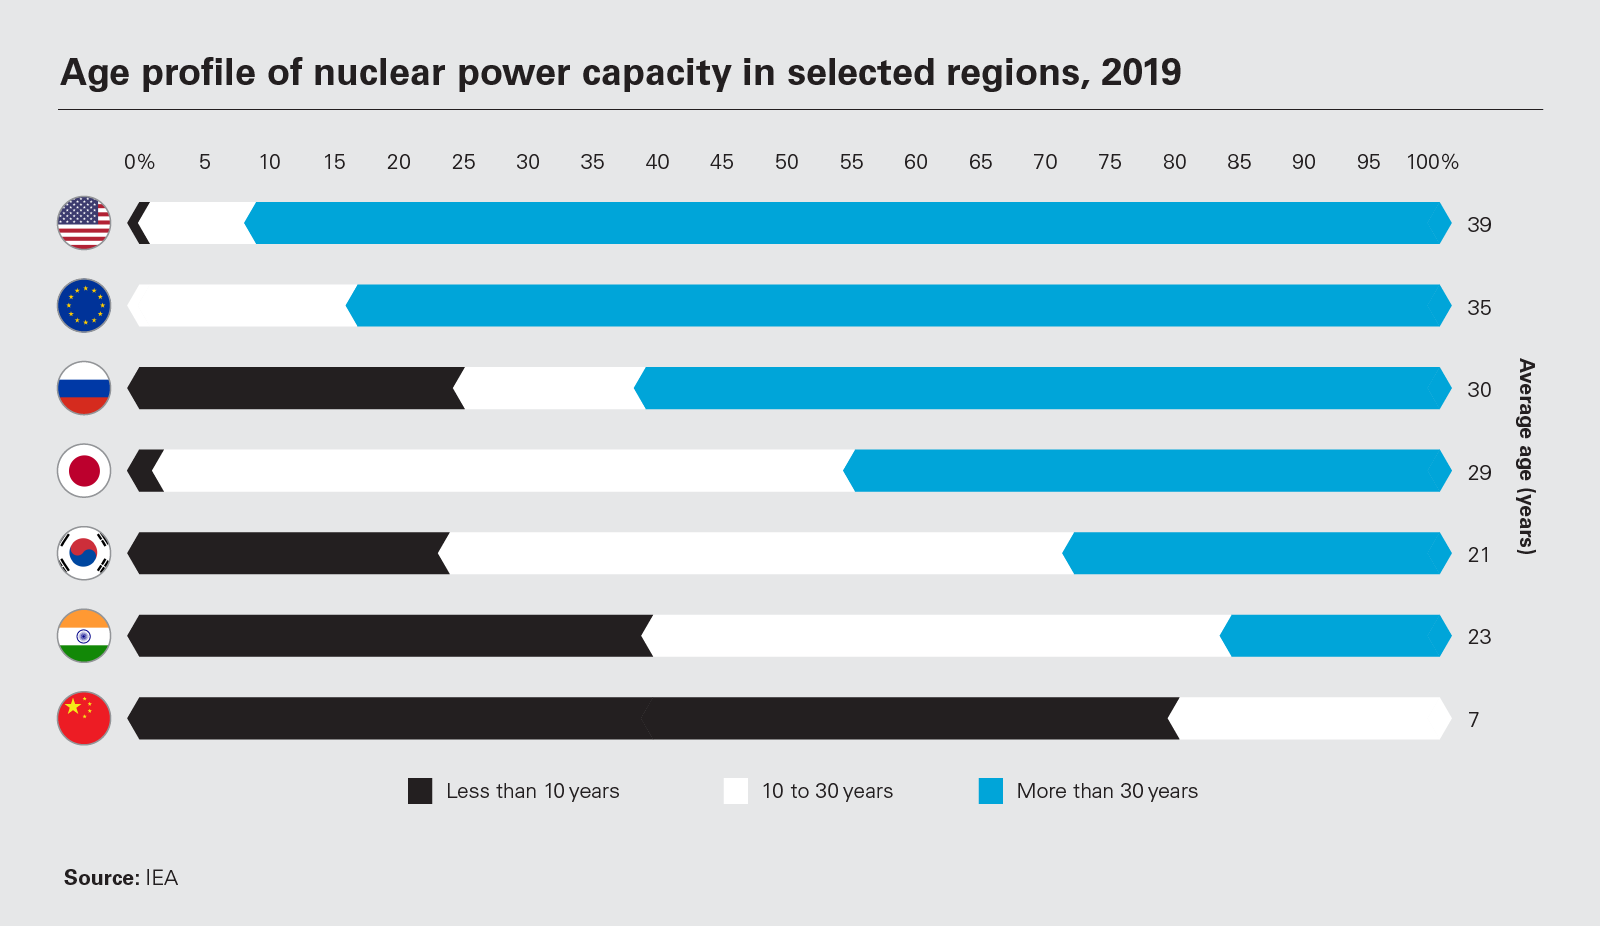 Age profile of nuclear power capacity in selected regions, 2019 (PNG)